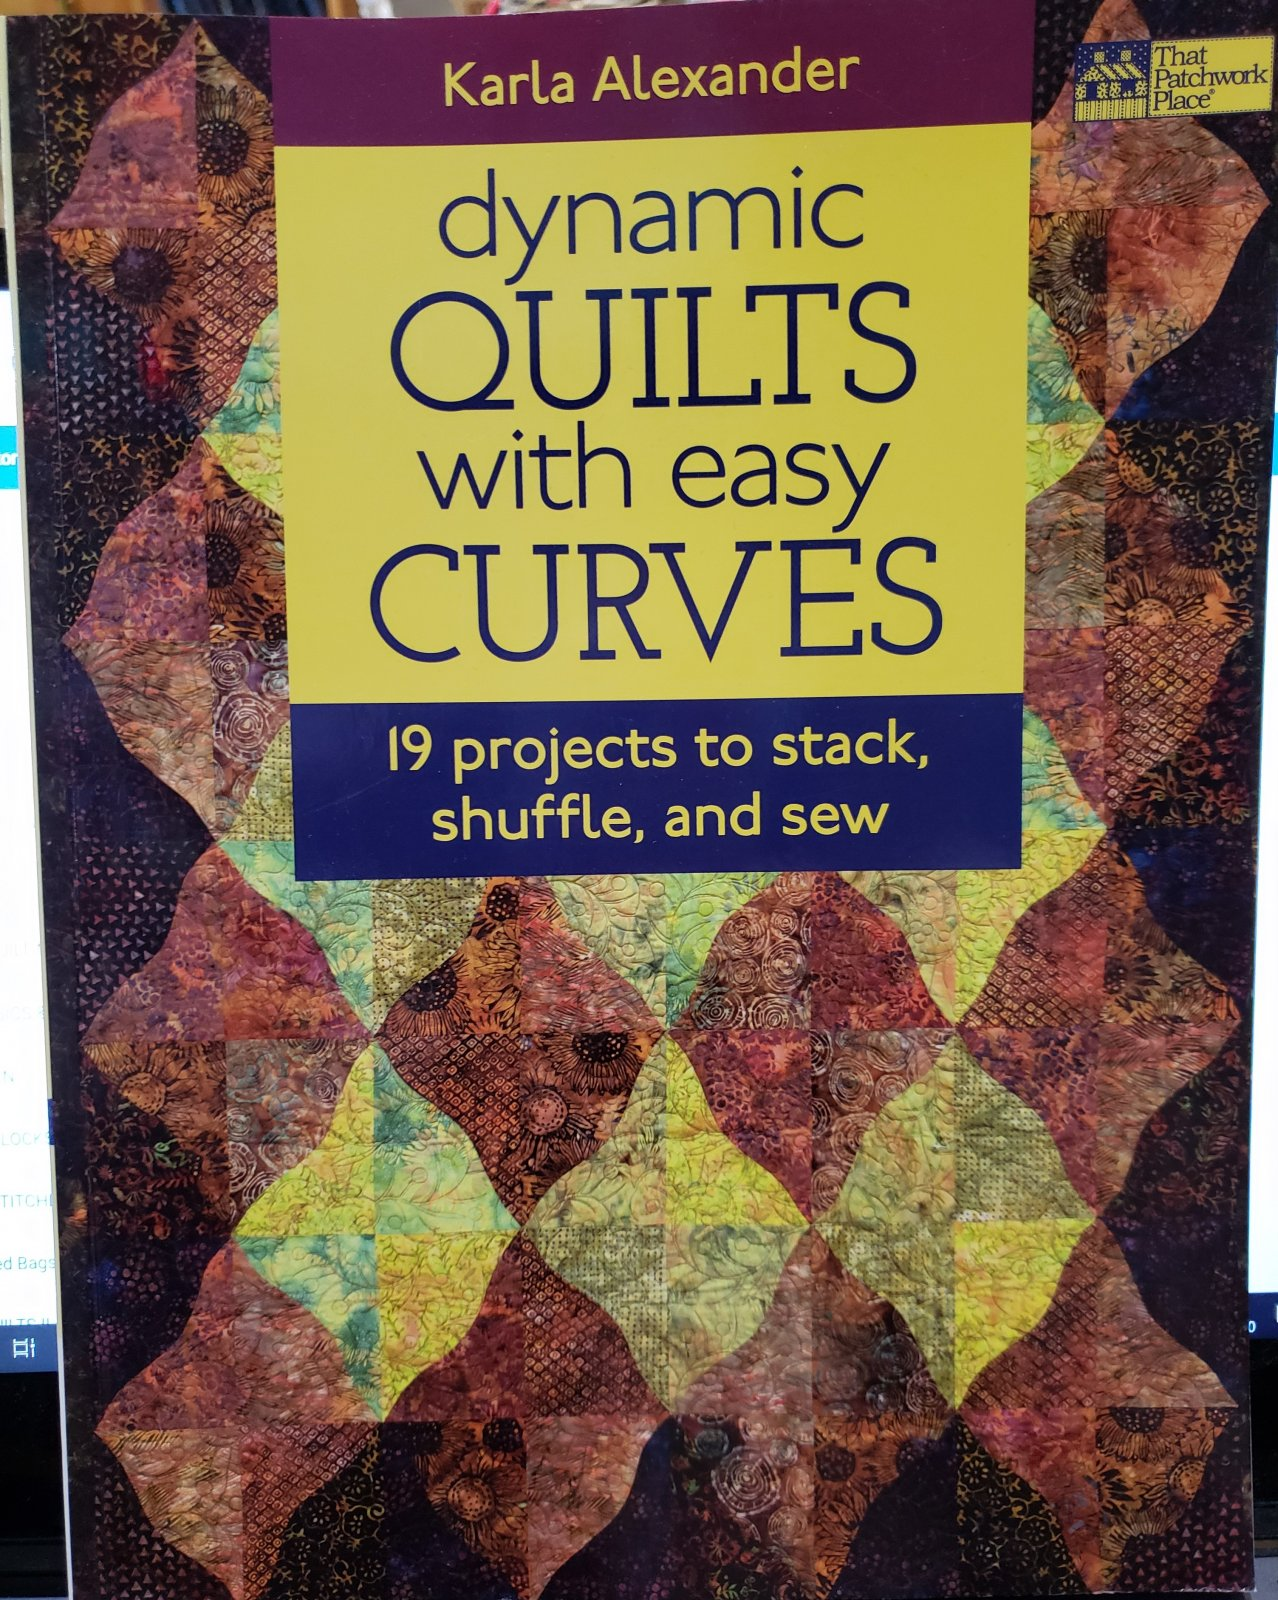 DYNAMIC QUILTS WITH EASY CURVES